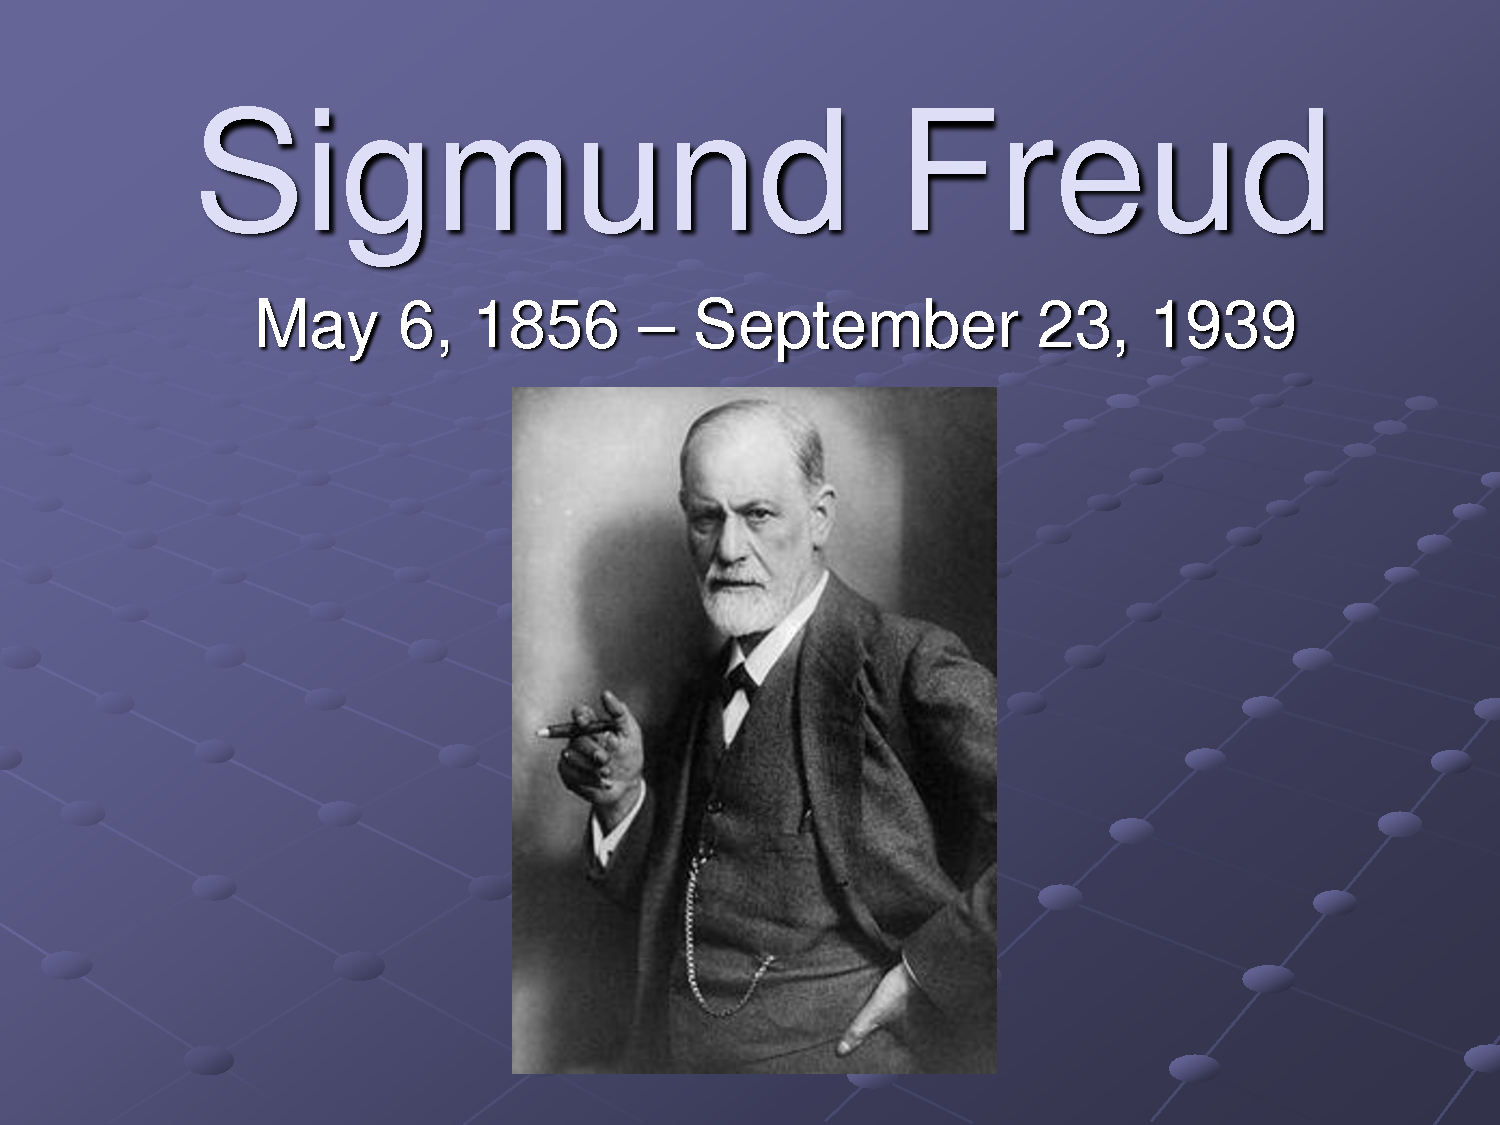 an analysis of sigmund freuds theories in the movie peter shaffers amadeus A short summary of 's sigmund freud summary and analysis childhood and his emphasis on the exclusively sexual causes of hysteria made his theories.